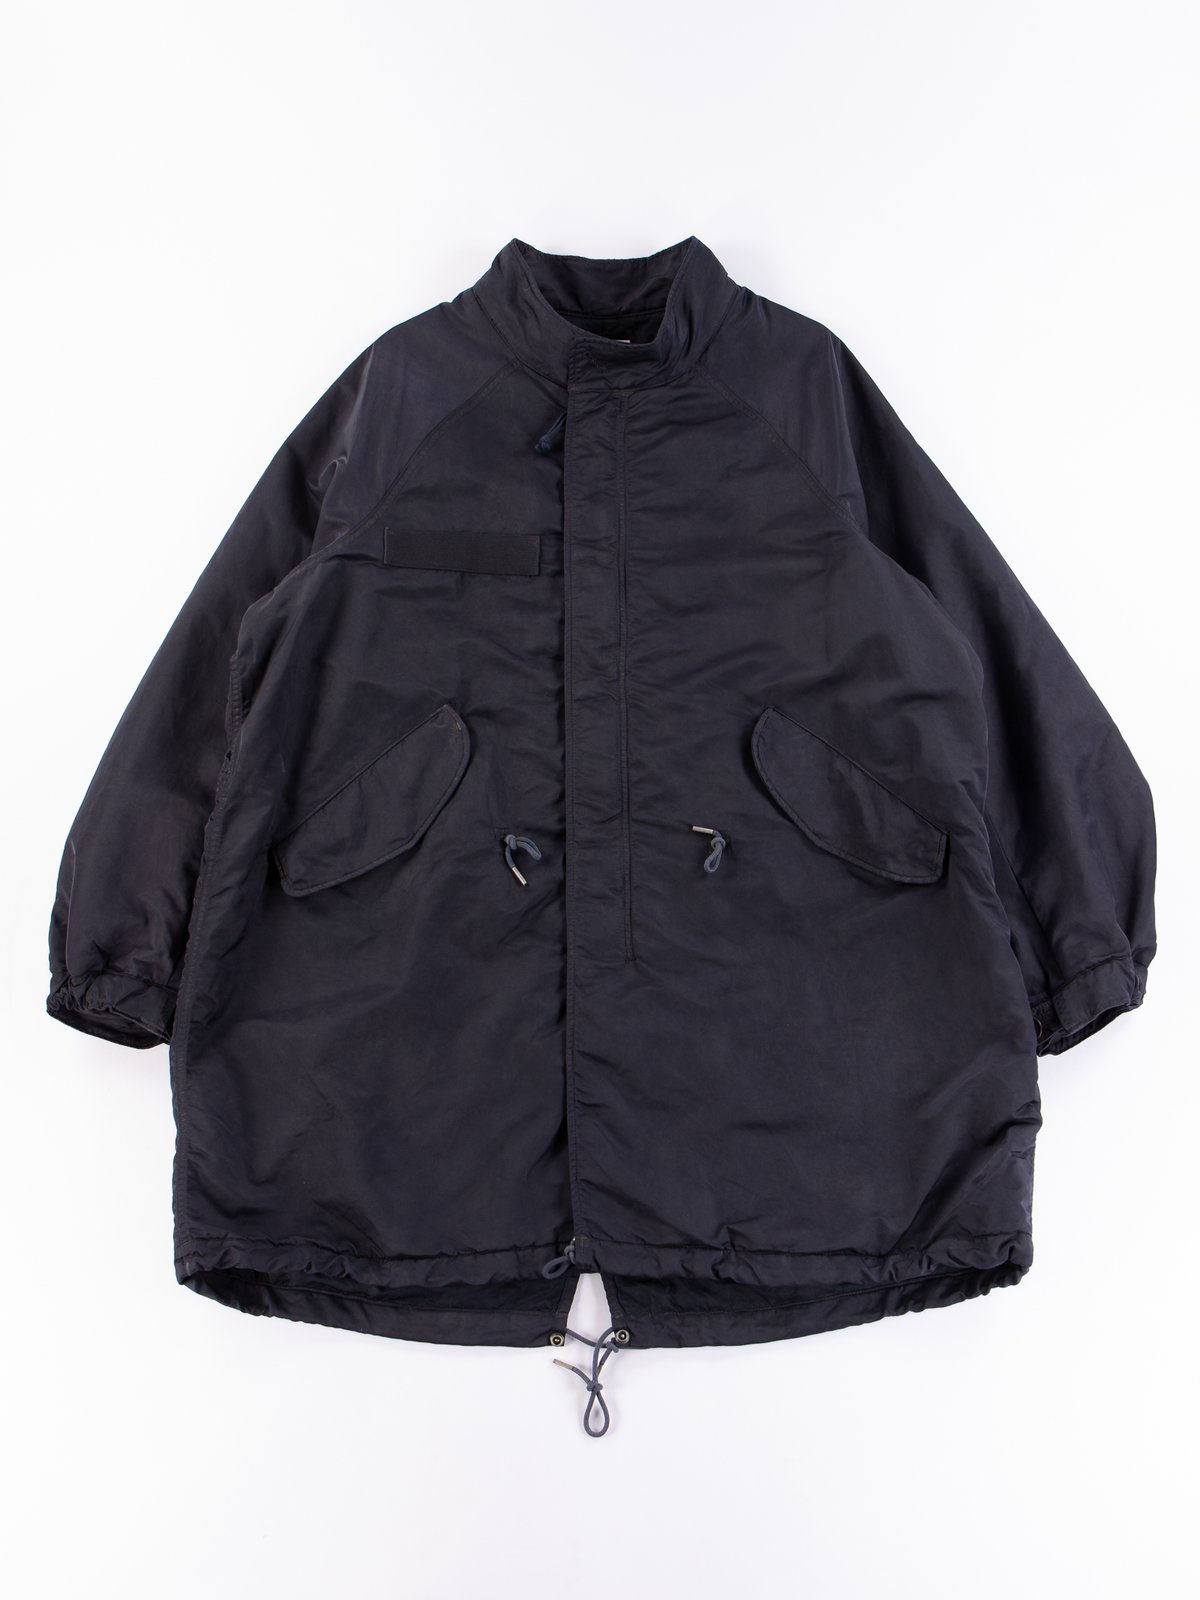 Navy Six–Five Fishtail Parka - Image 1